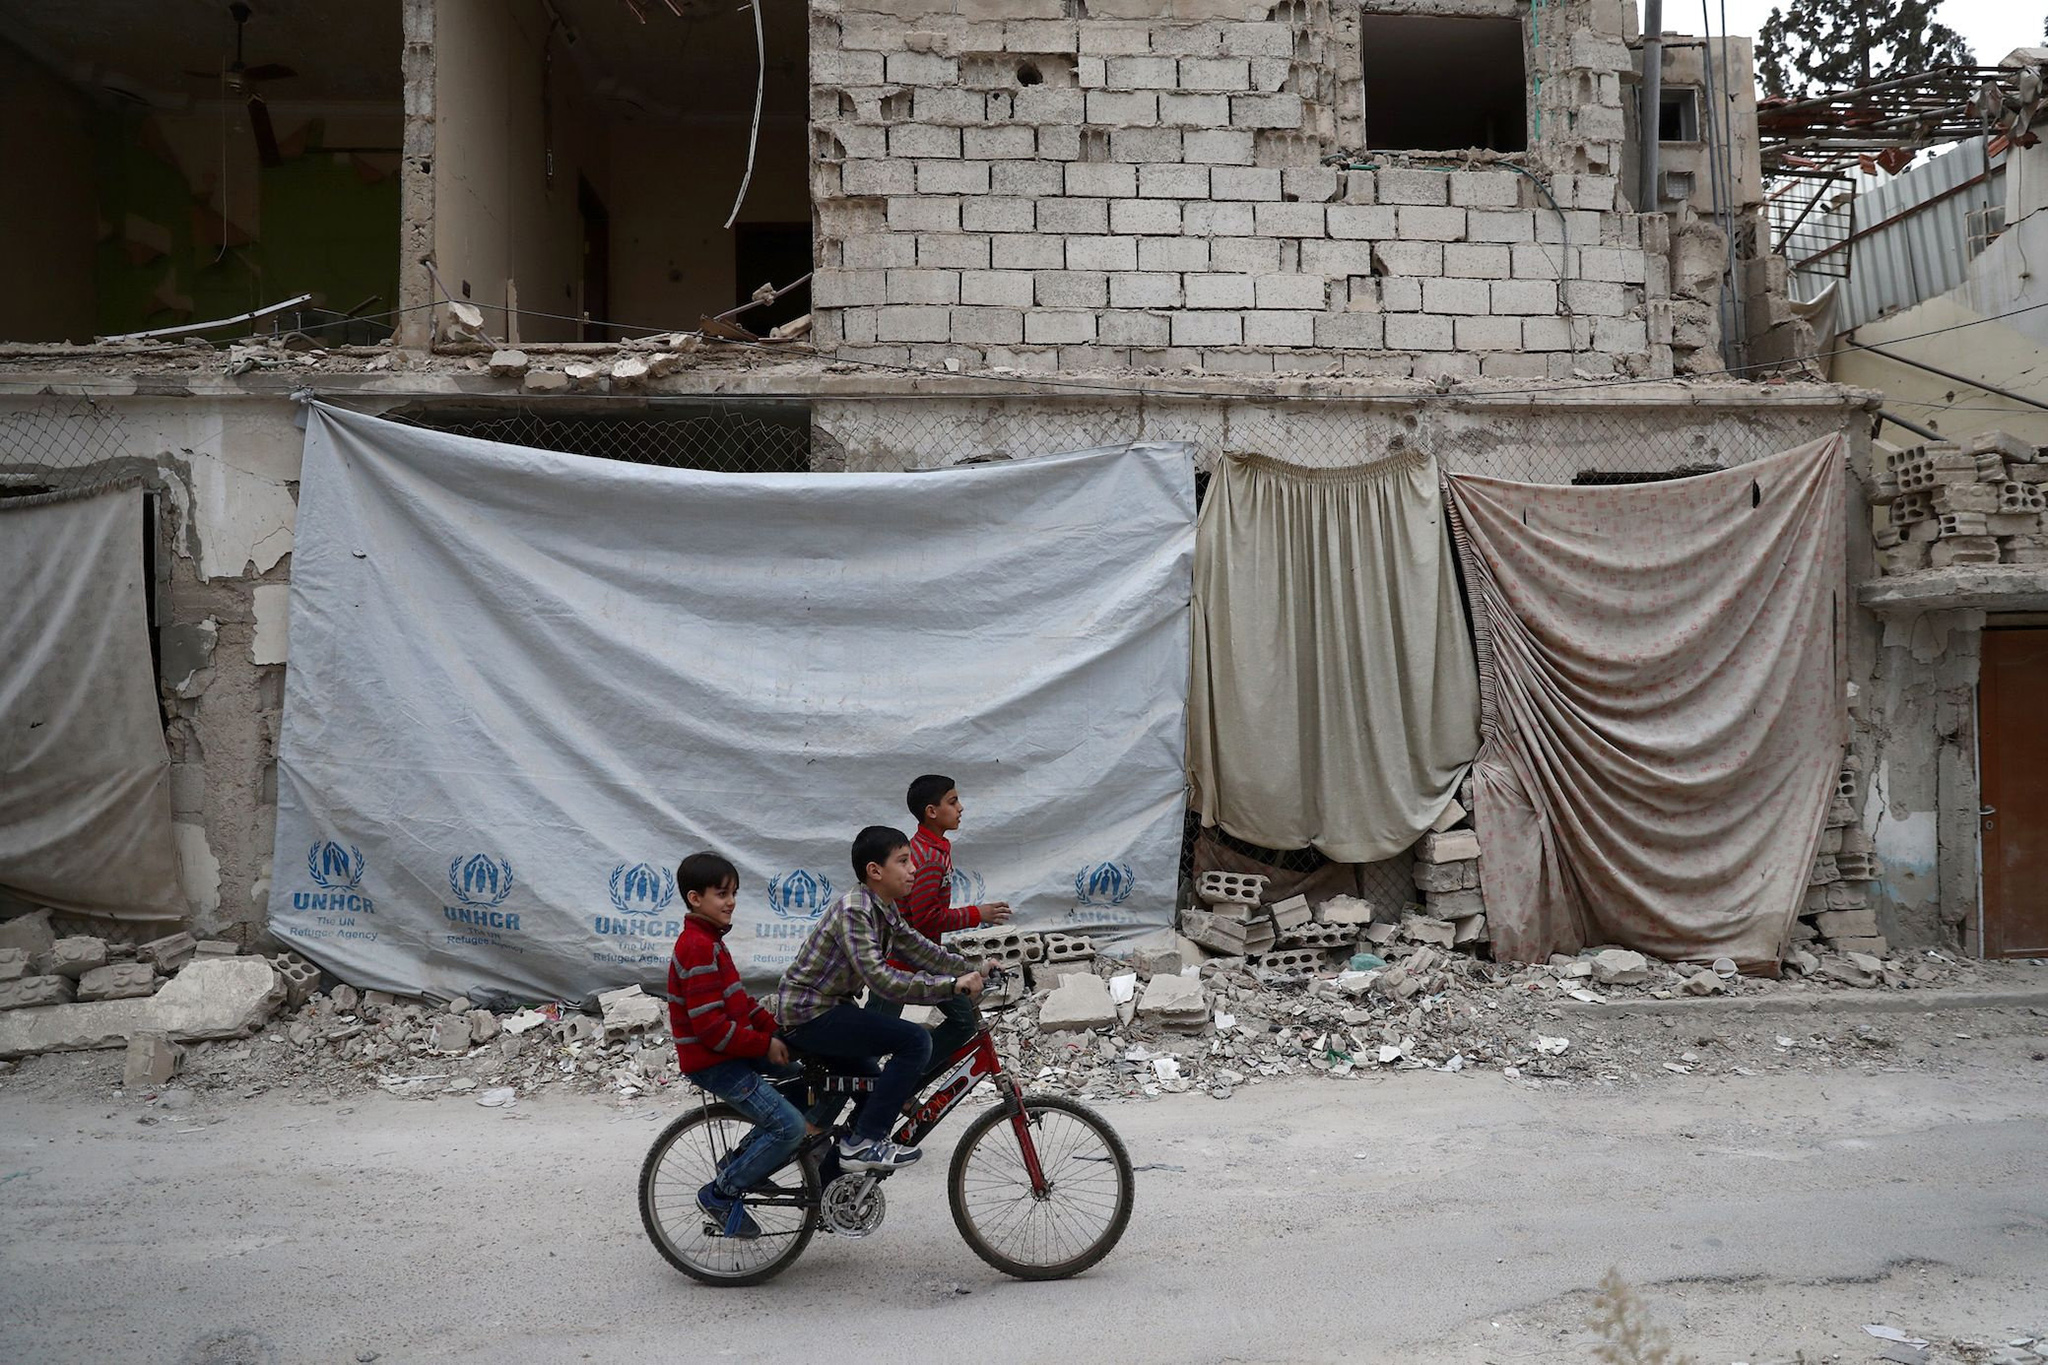 Syrian children ride a bicycle in the rebel-held town of Douma on the eastern outskirts of the capital Damascus on November 13, 2016. Douma, the largest town in the Eastern Ghouta area with more than 100,000 residents, is surrounded and regularly shelled by regime forces. / AFP PHOTO / Abd DoumanyABD DOUMANY/AFP/Getty Images